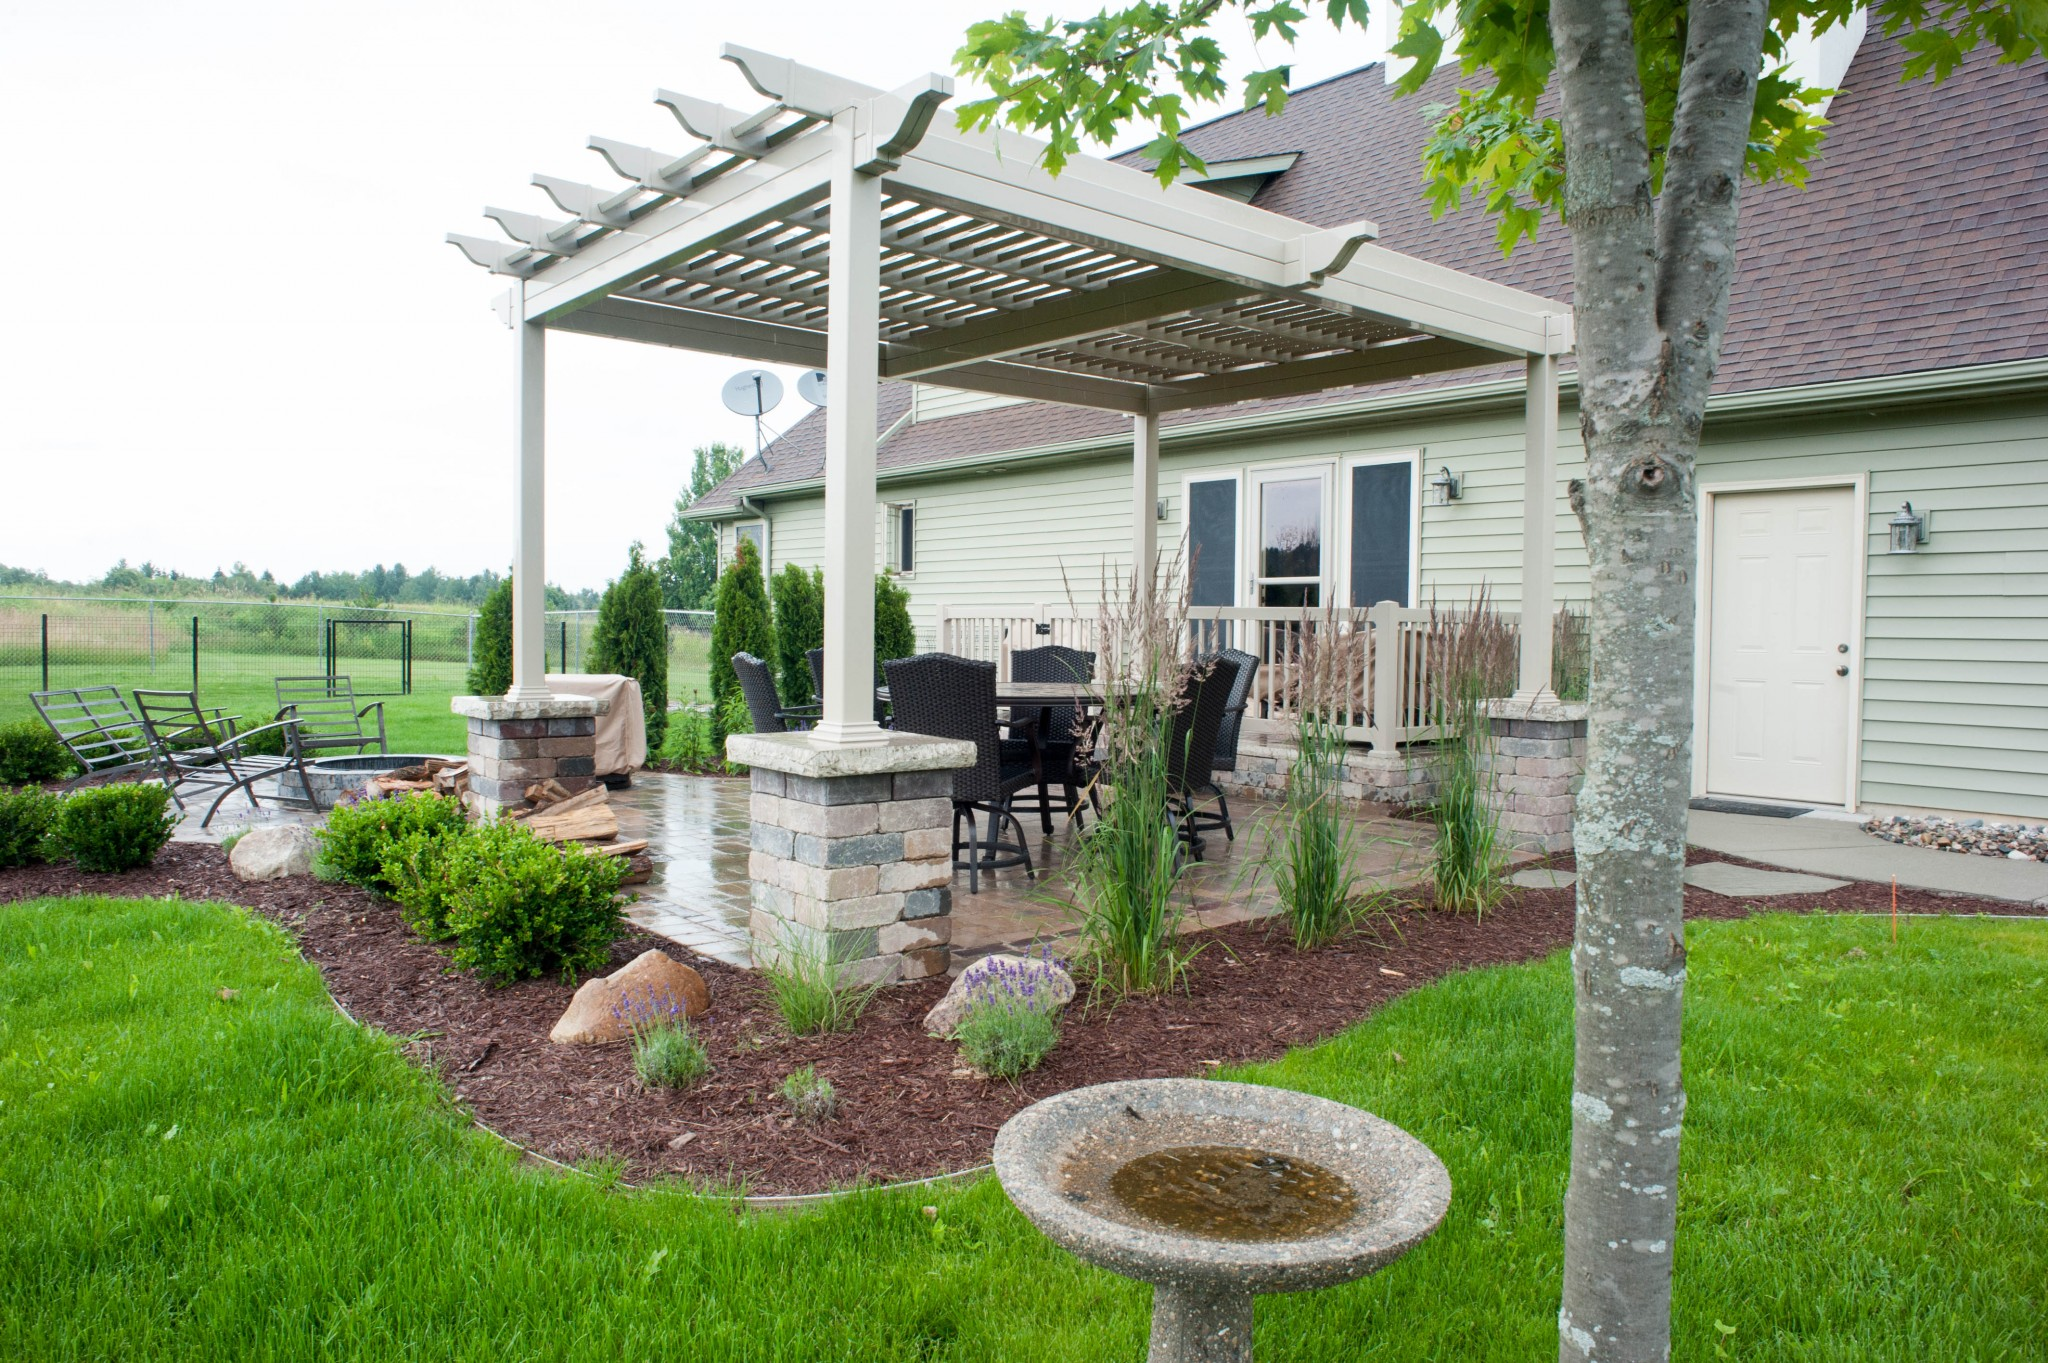 Backyard With Pergola pergola over paver patio with fire pit - r&d landscape